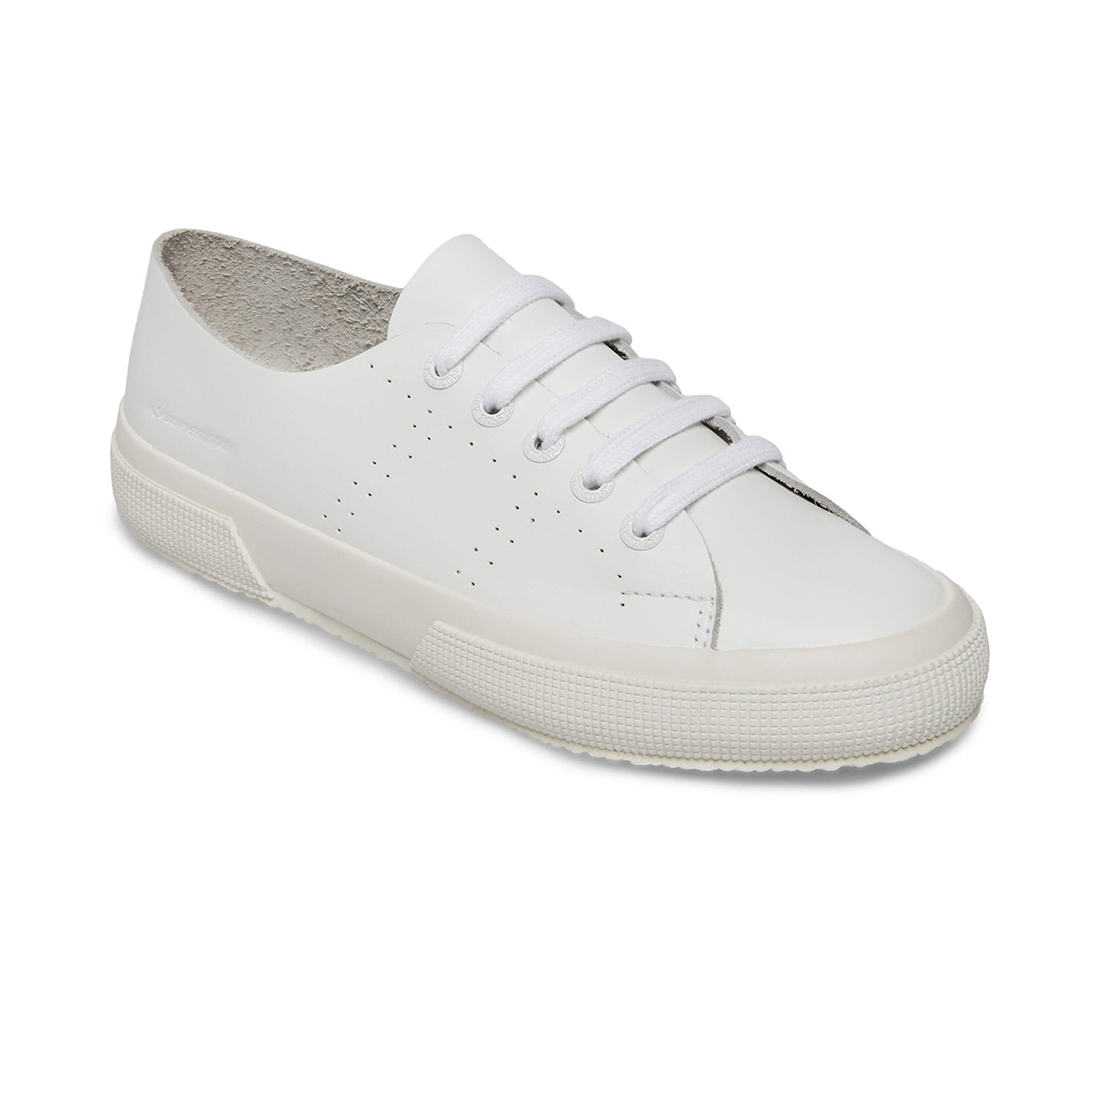 superga 2750 raw cut white leather sneaker 84017